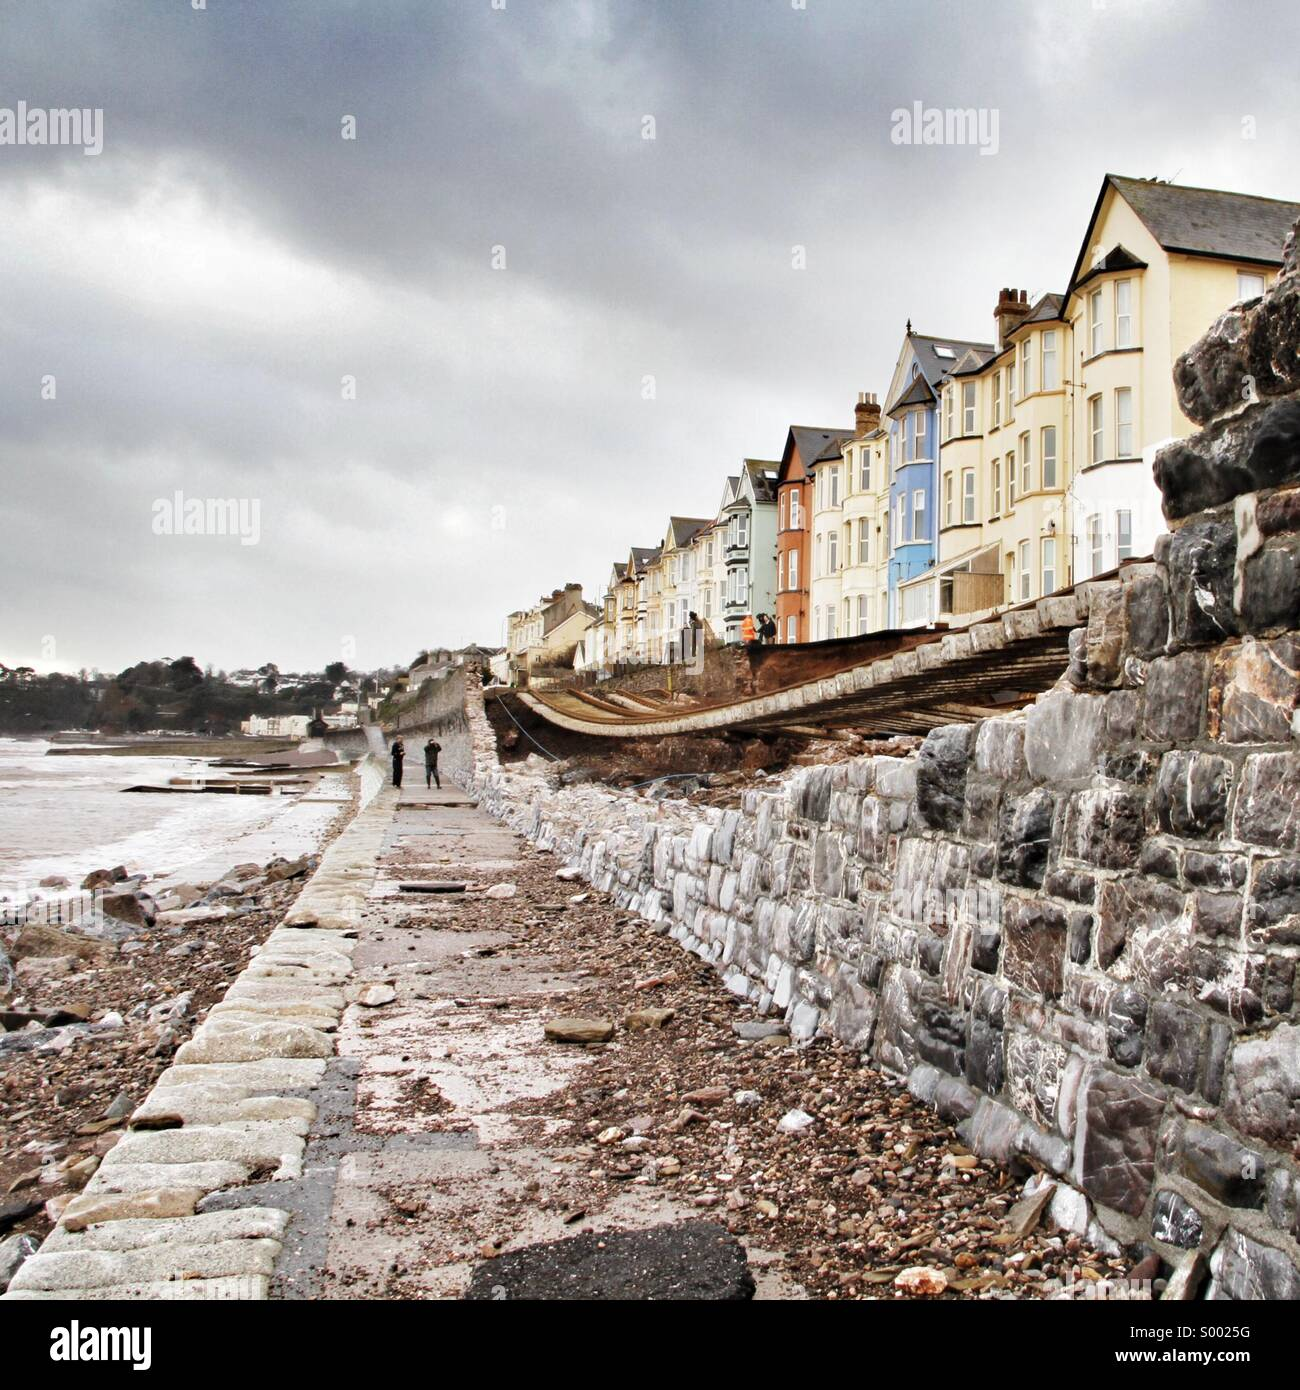 Dawlish railway line and sea wall destroyed by the sea during #ukstorm2014 - Stock Image